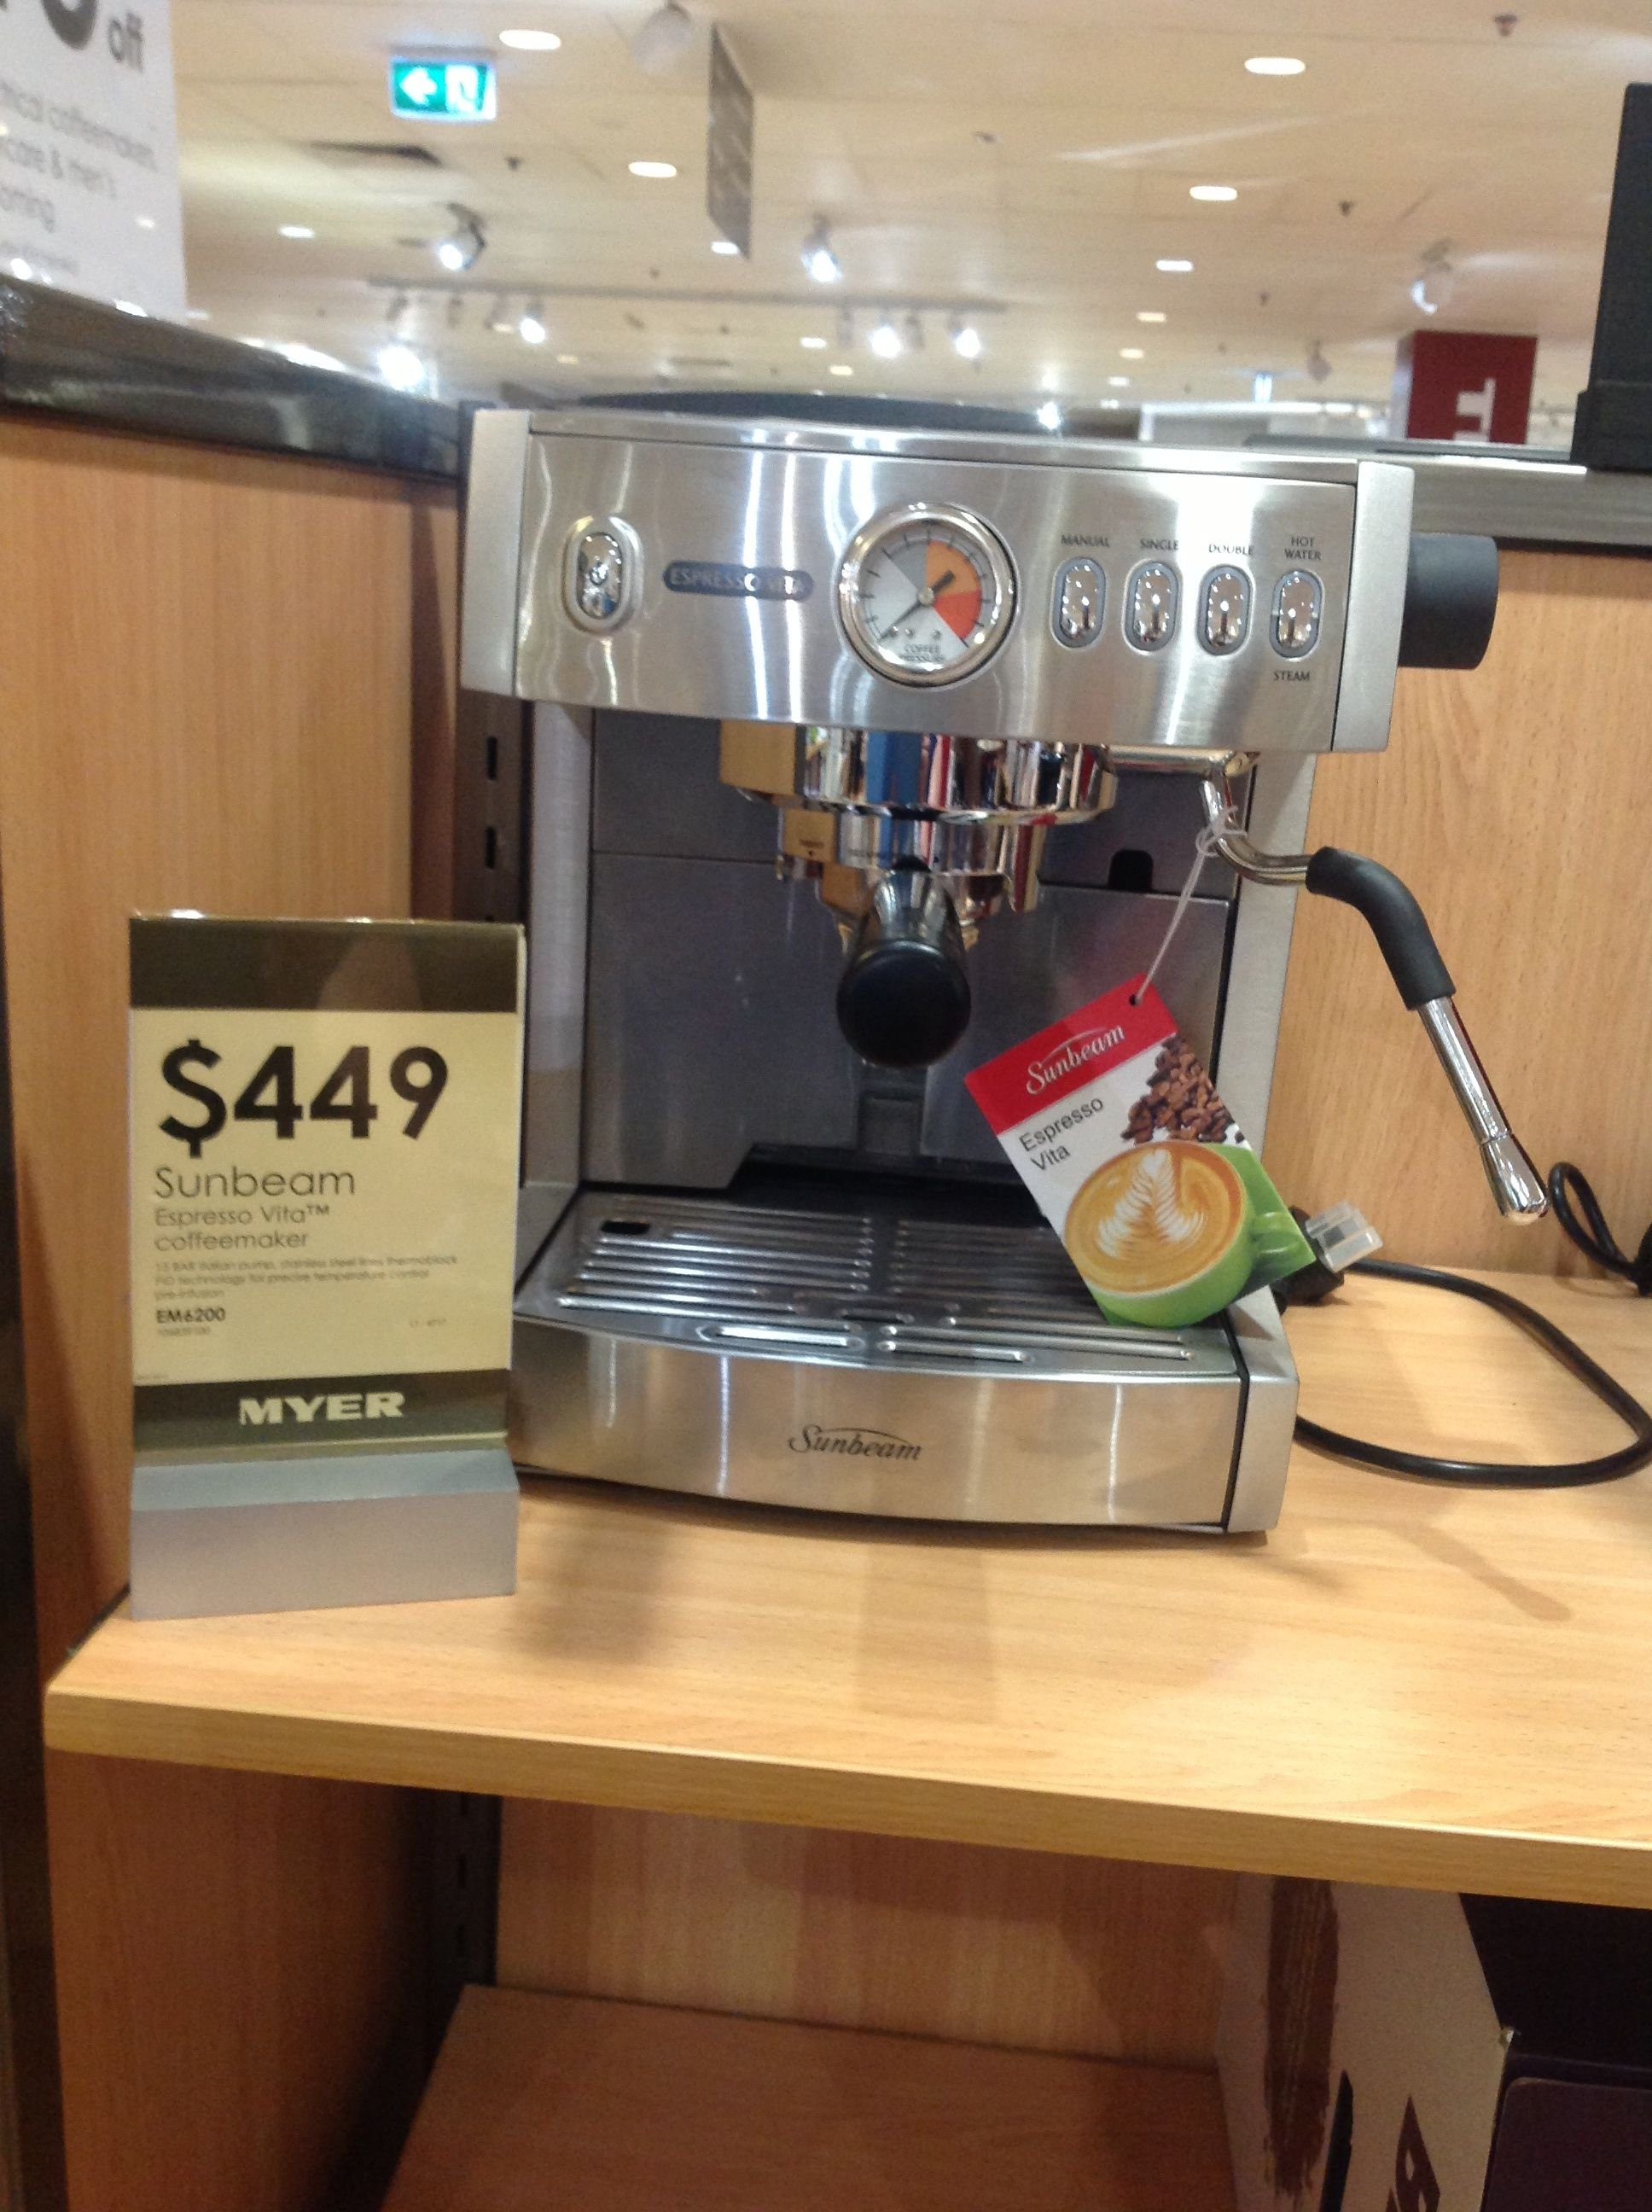 Samantha, Myer.  Sunbeam Espresso Vita coffee machine, $449.00